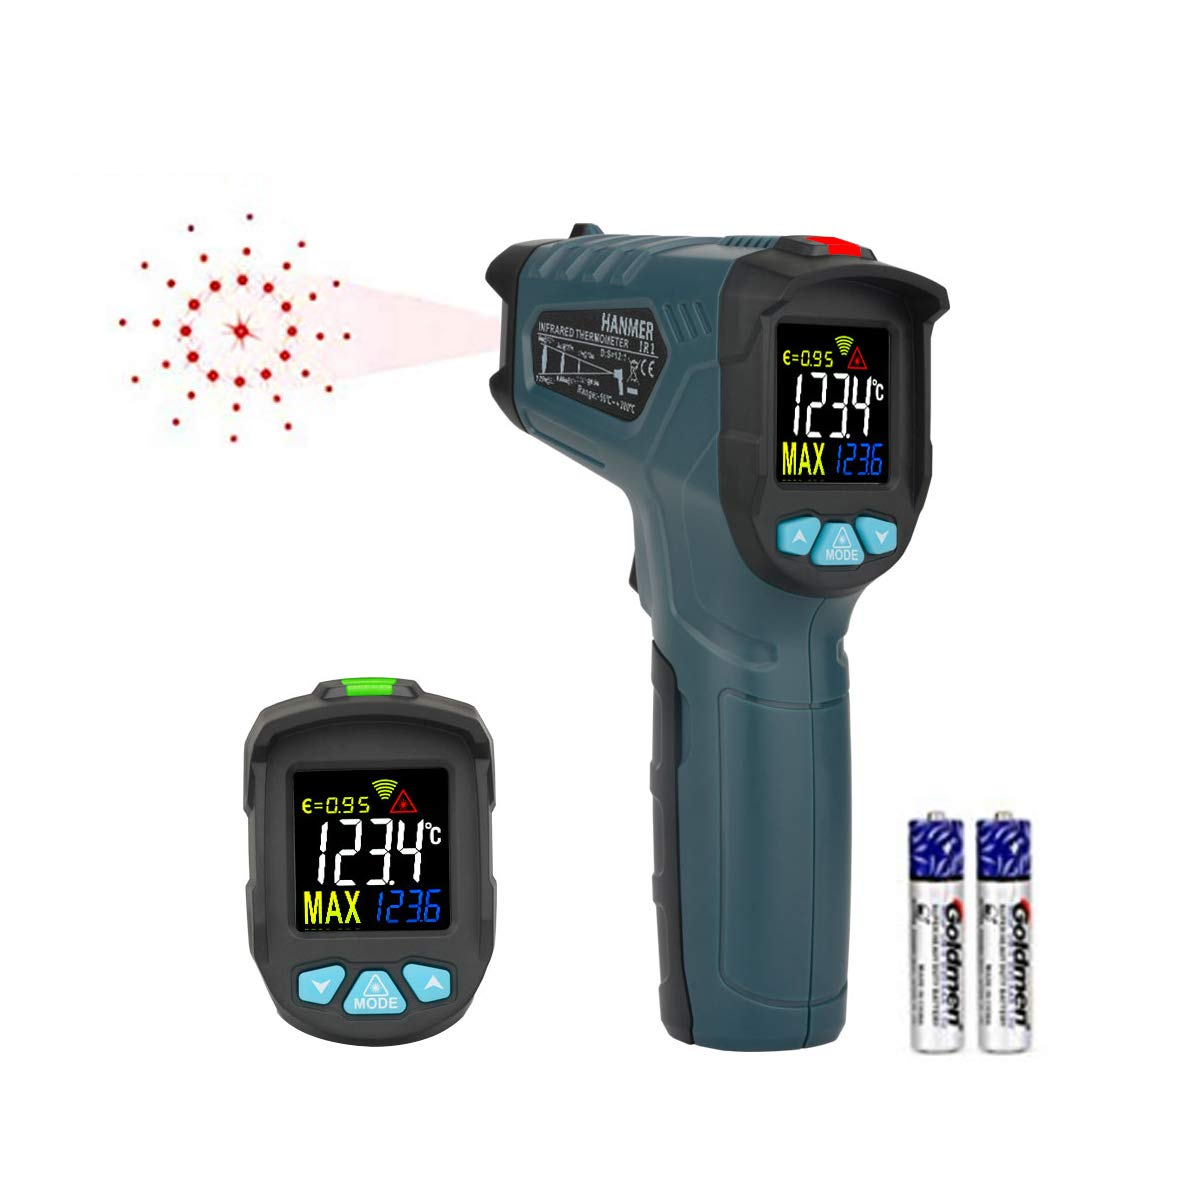 Digital Laser Infrared Thermometer Hanmer IR1 【Non-Contact Type 0.5 sec high-Speed Temperature Detection】 Color Display Non-Contact Thermometer Thermometer for Meat Refrigerator Pool Oven